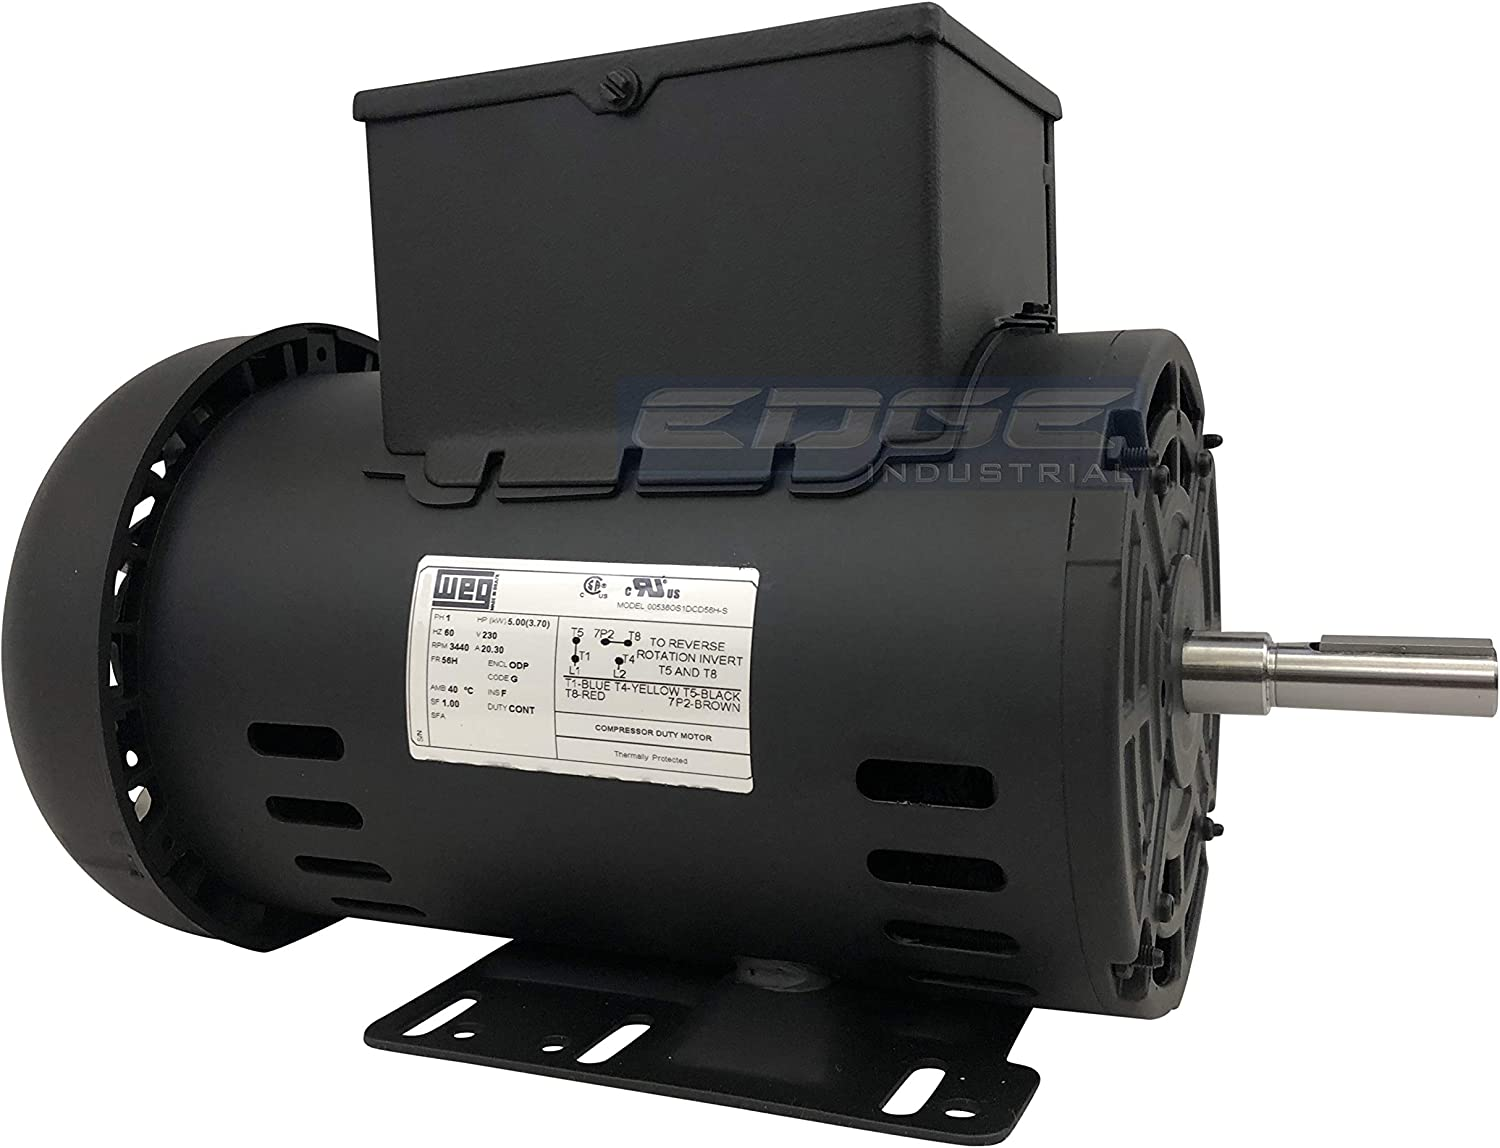 "New 5HP Electric Motor for air Compressor 56 Frame 3440 RPM 5/8"" Shaft 20.3 AMP 230 Volt"